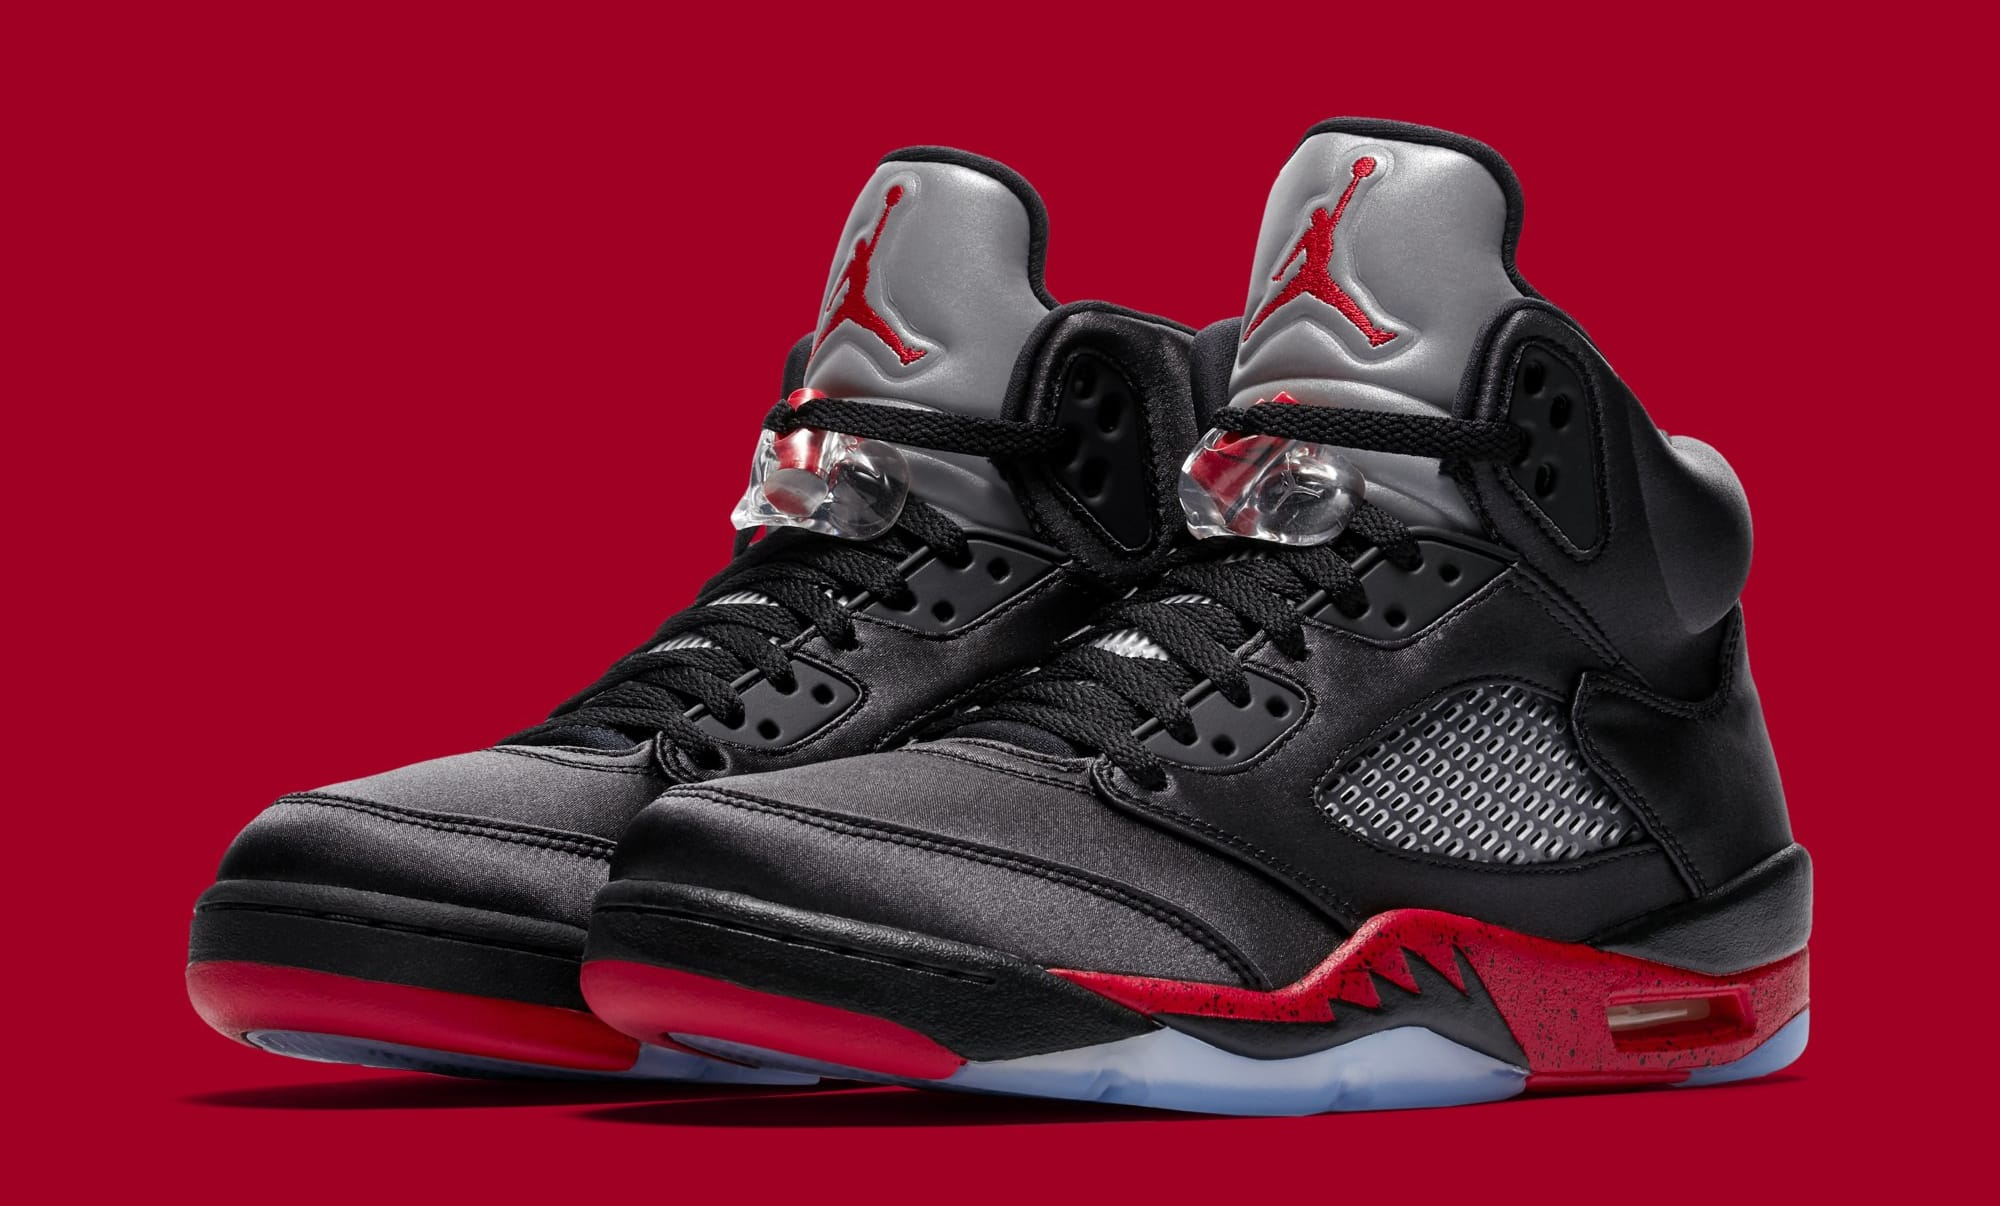 c367d8b64d17 air jordan 5 Archives - Air 23 - Air Jordan Release Dates ...